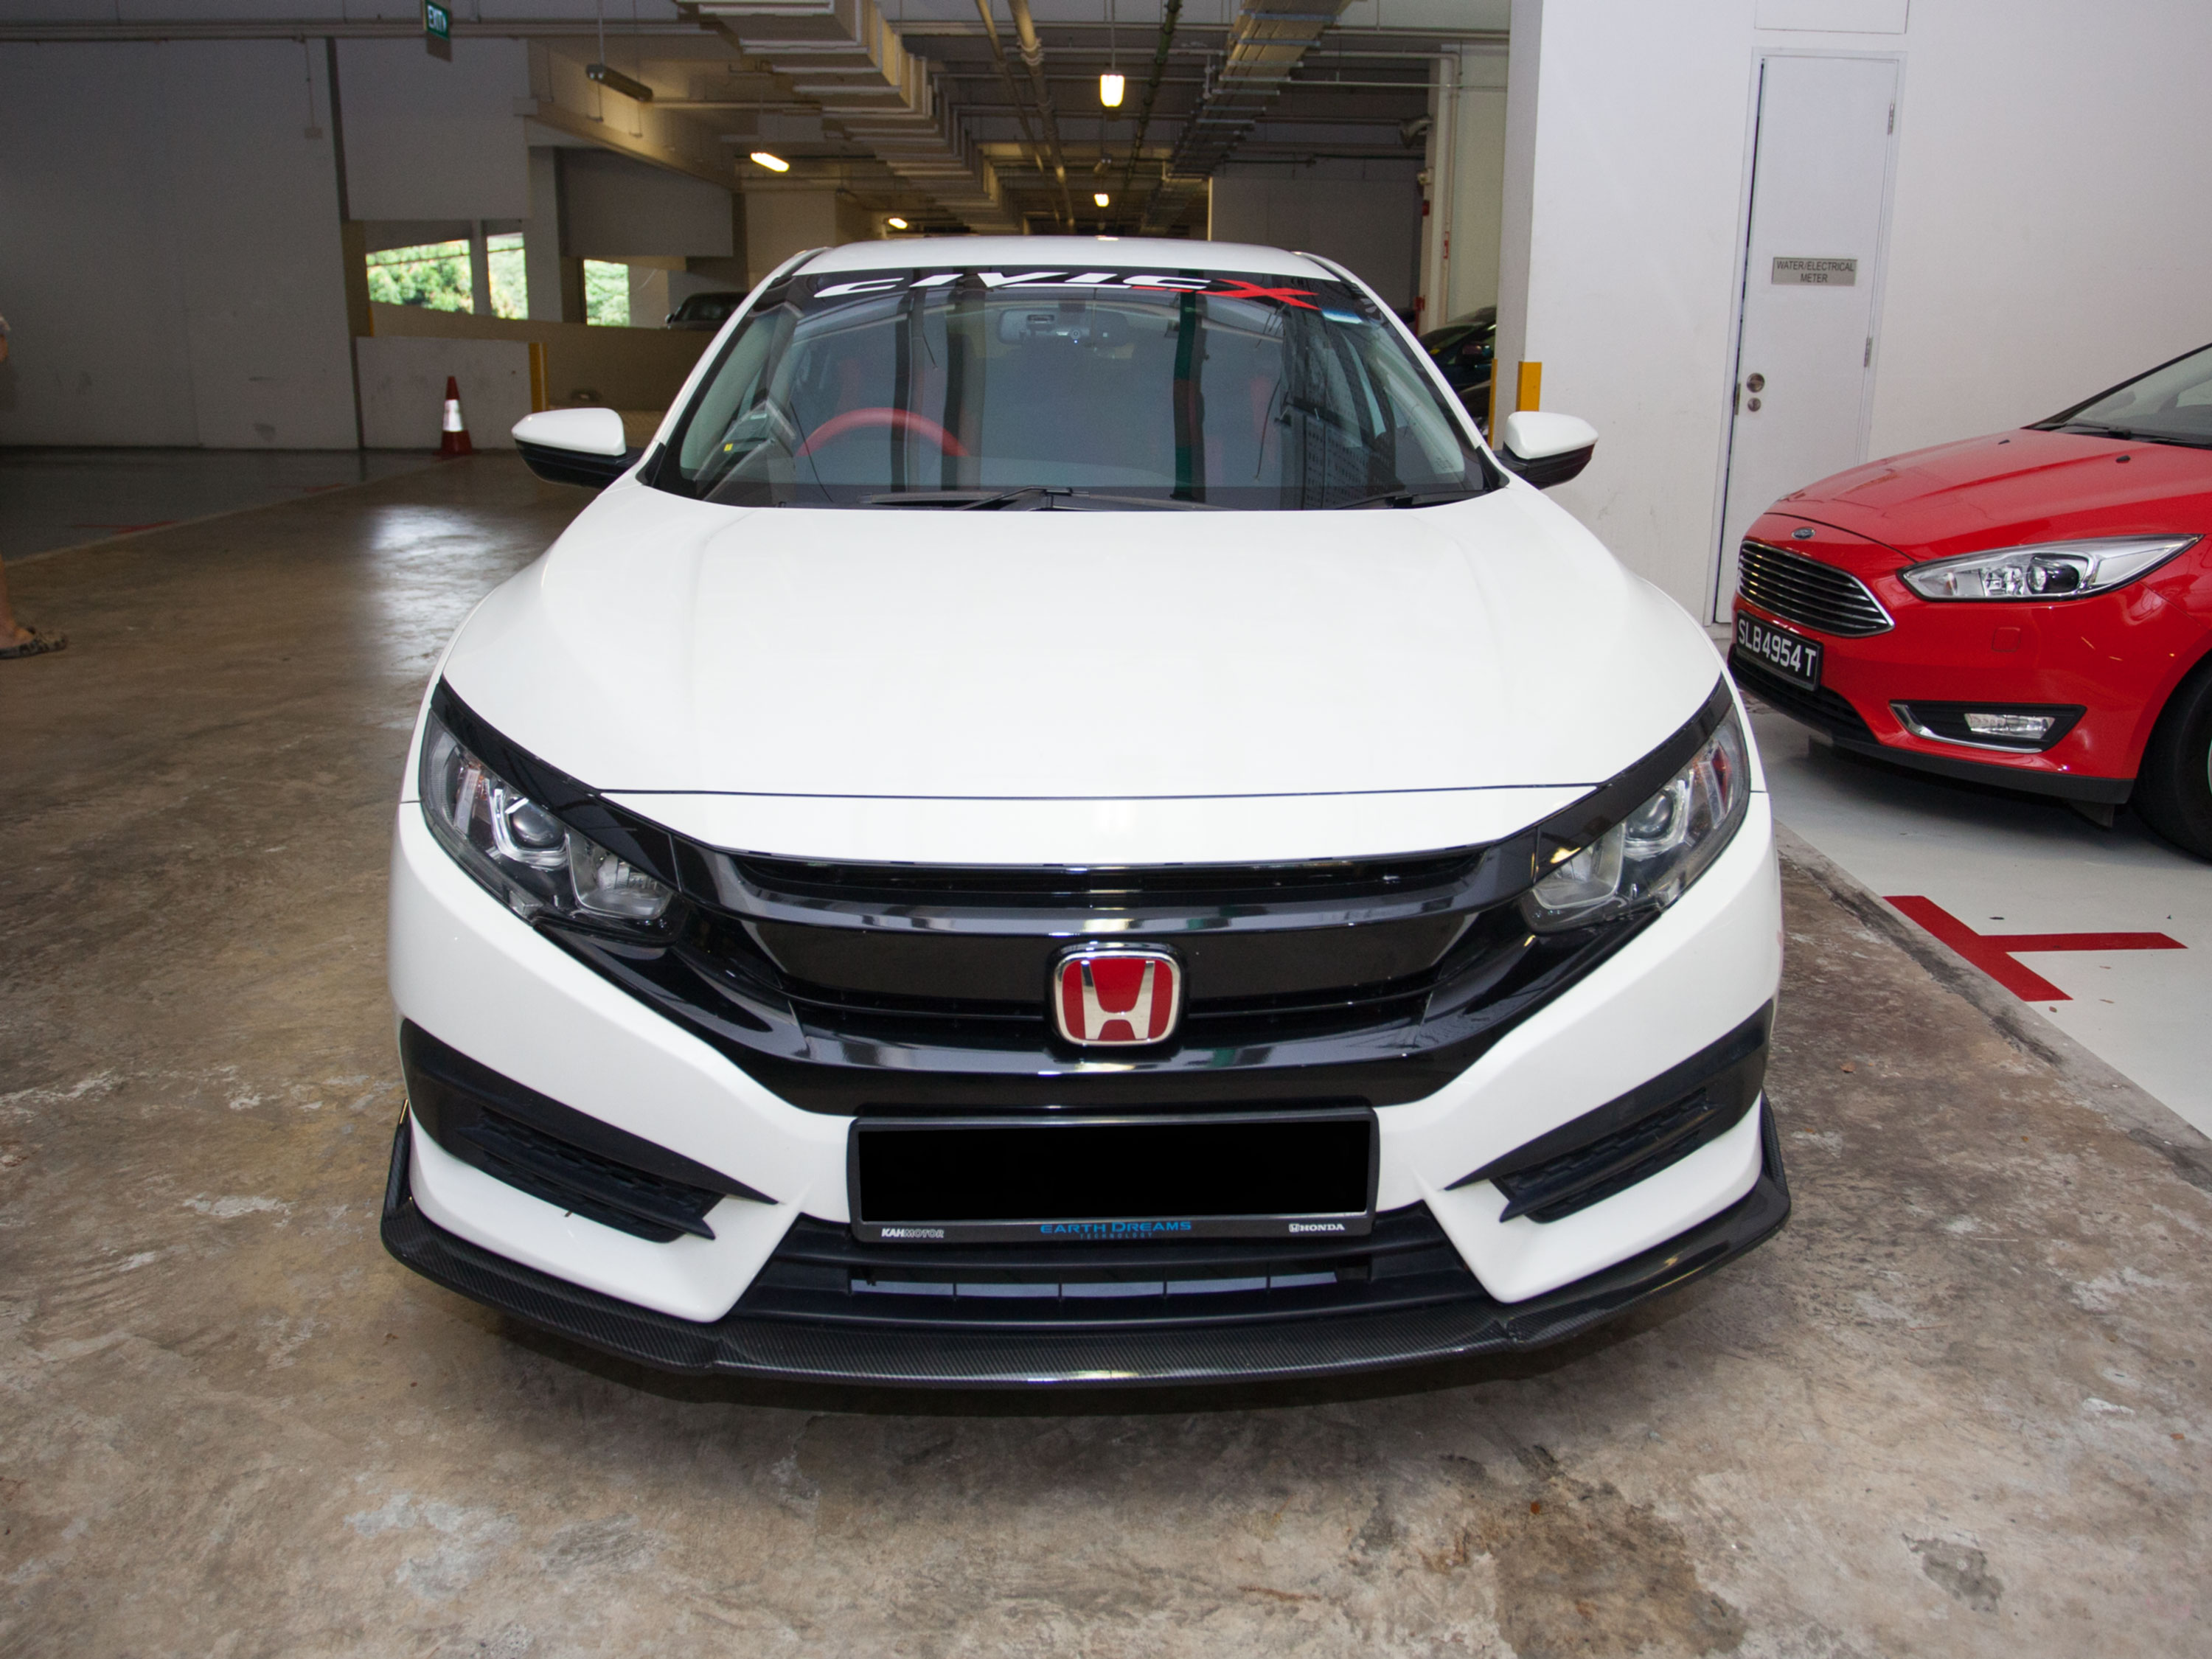 Honda Civic 1.6 VTI CVT [White] (For Rent)